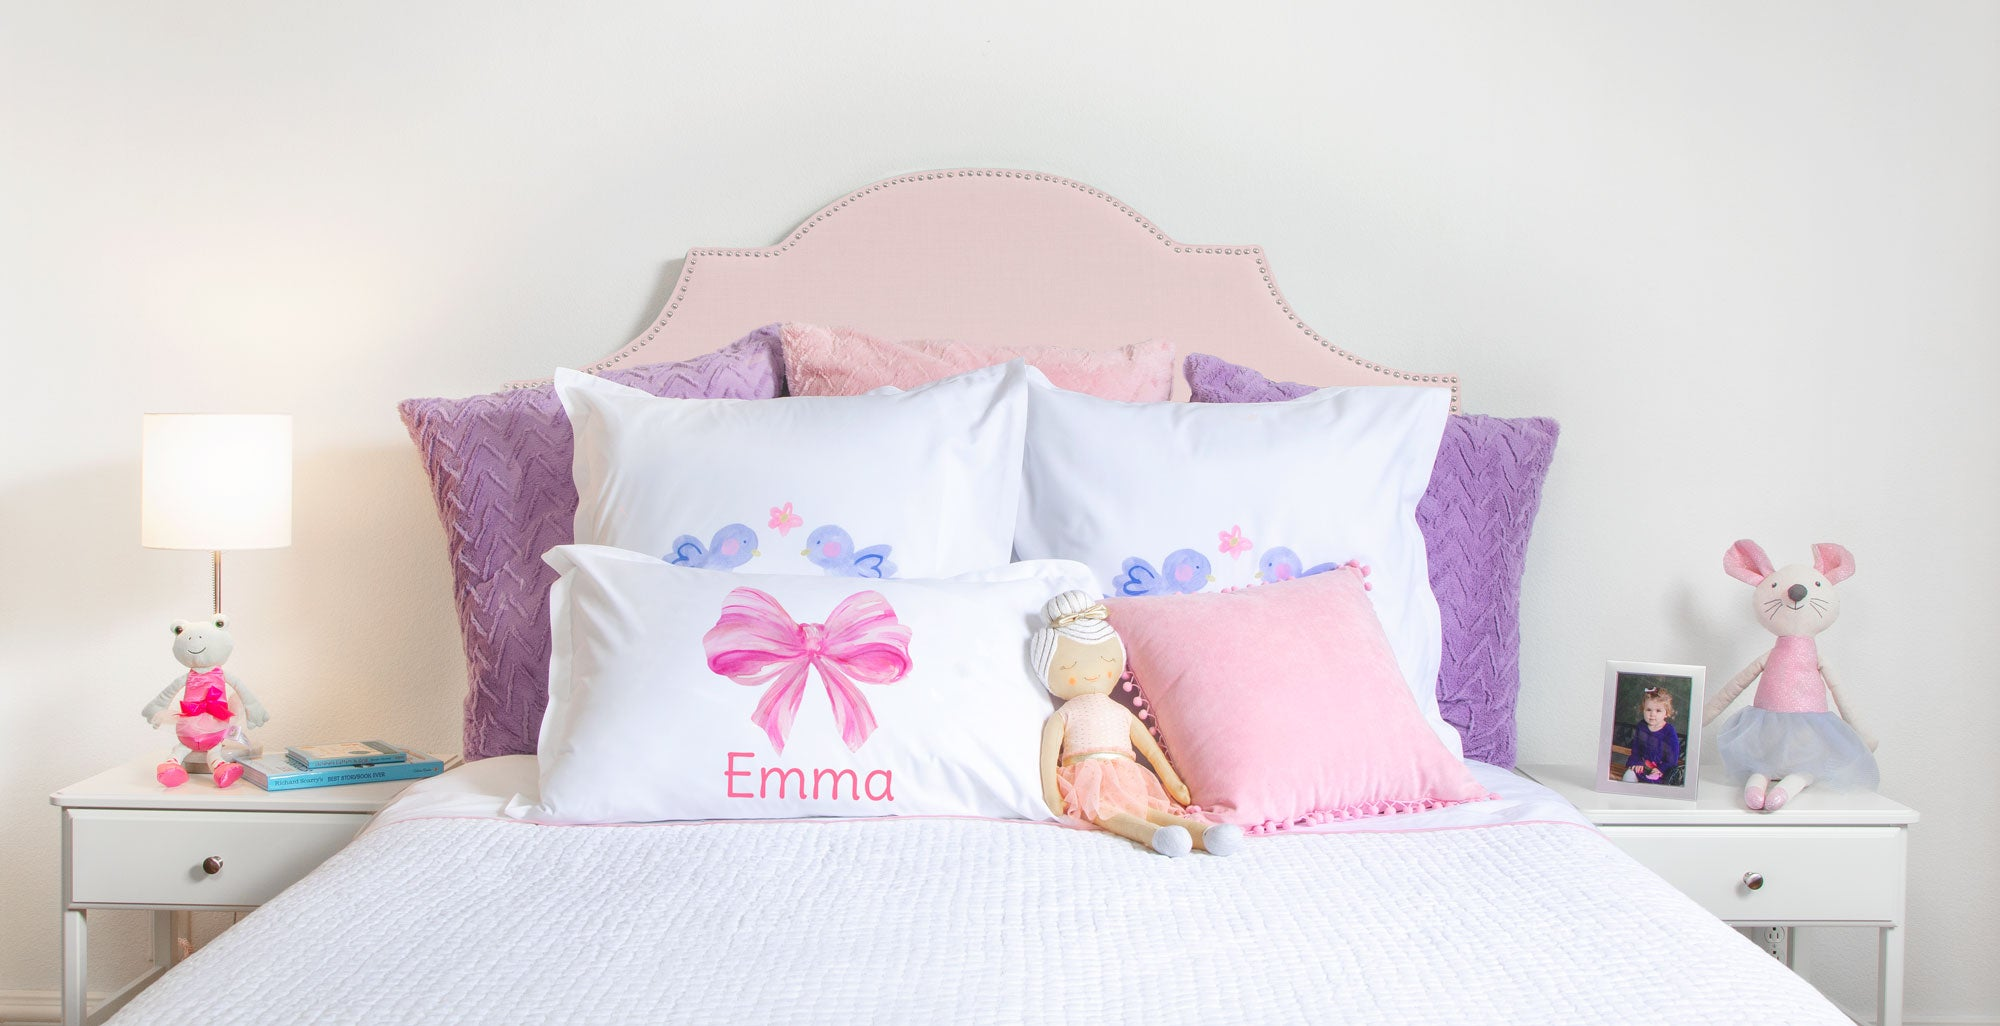 Pink Bow - Personalized Kids Pillowcase Collection